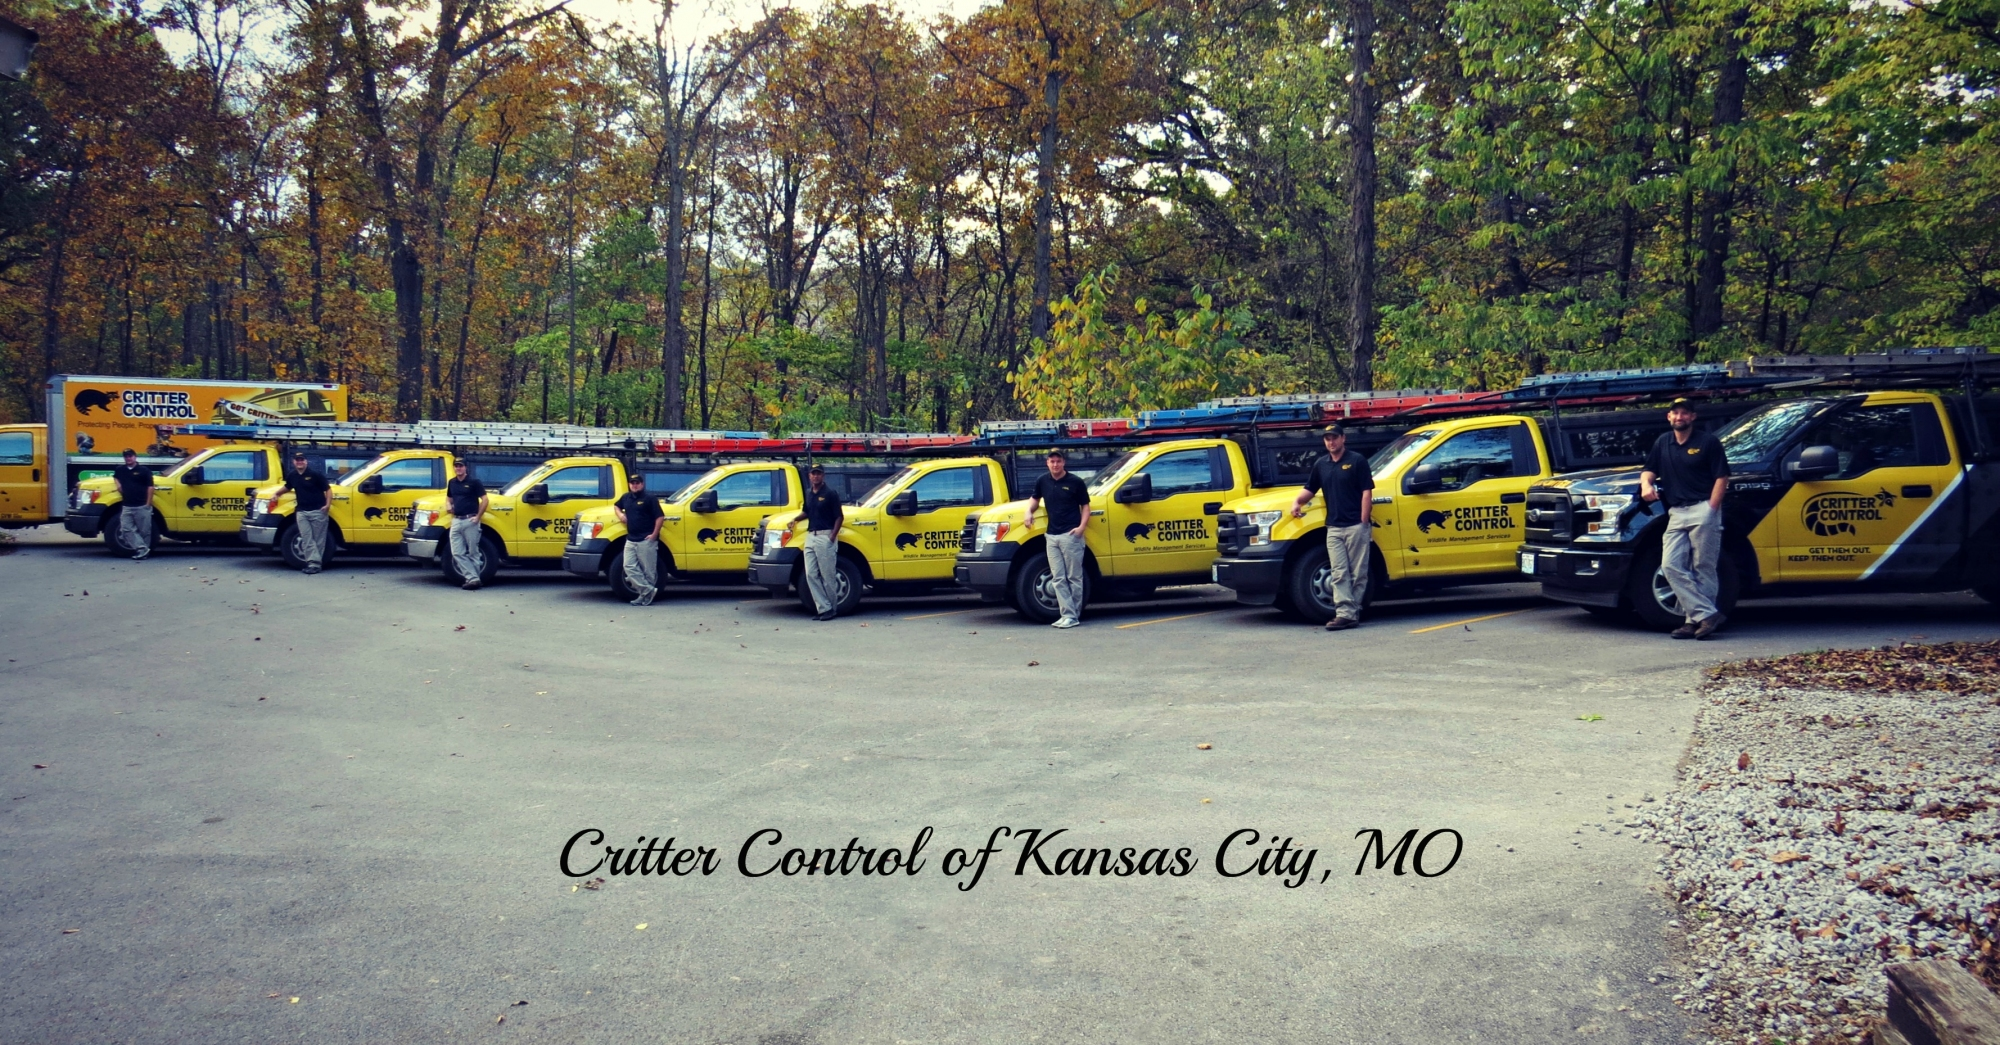 Critter Control Kansas City Professional Wildlife Control Technicians